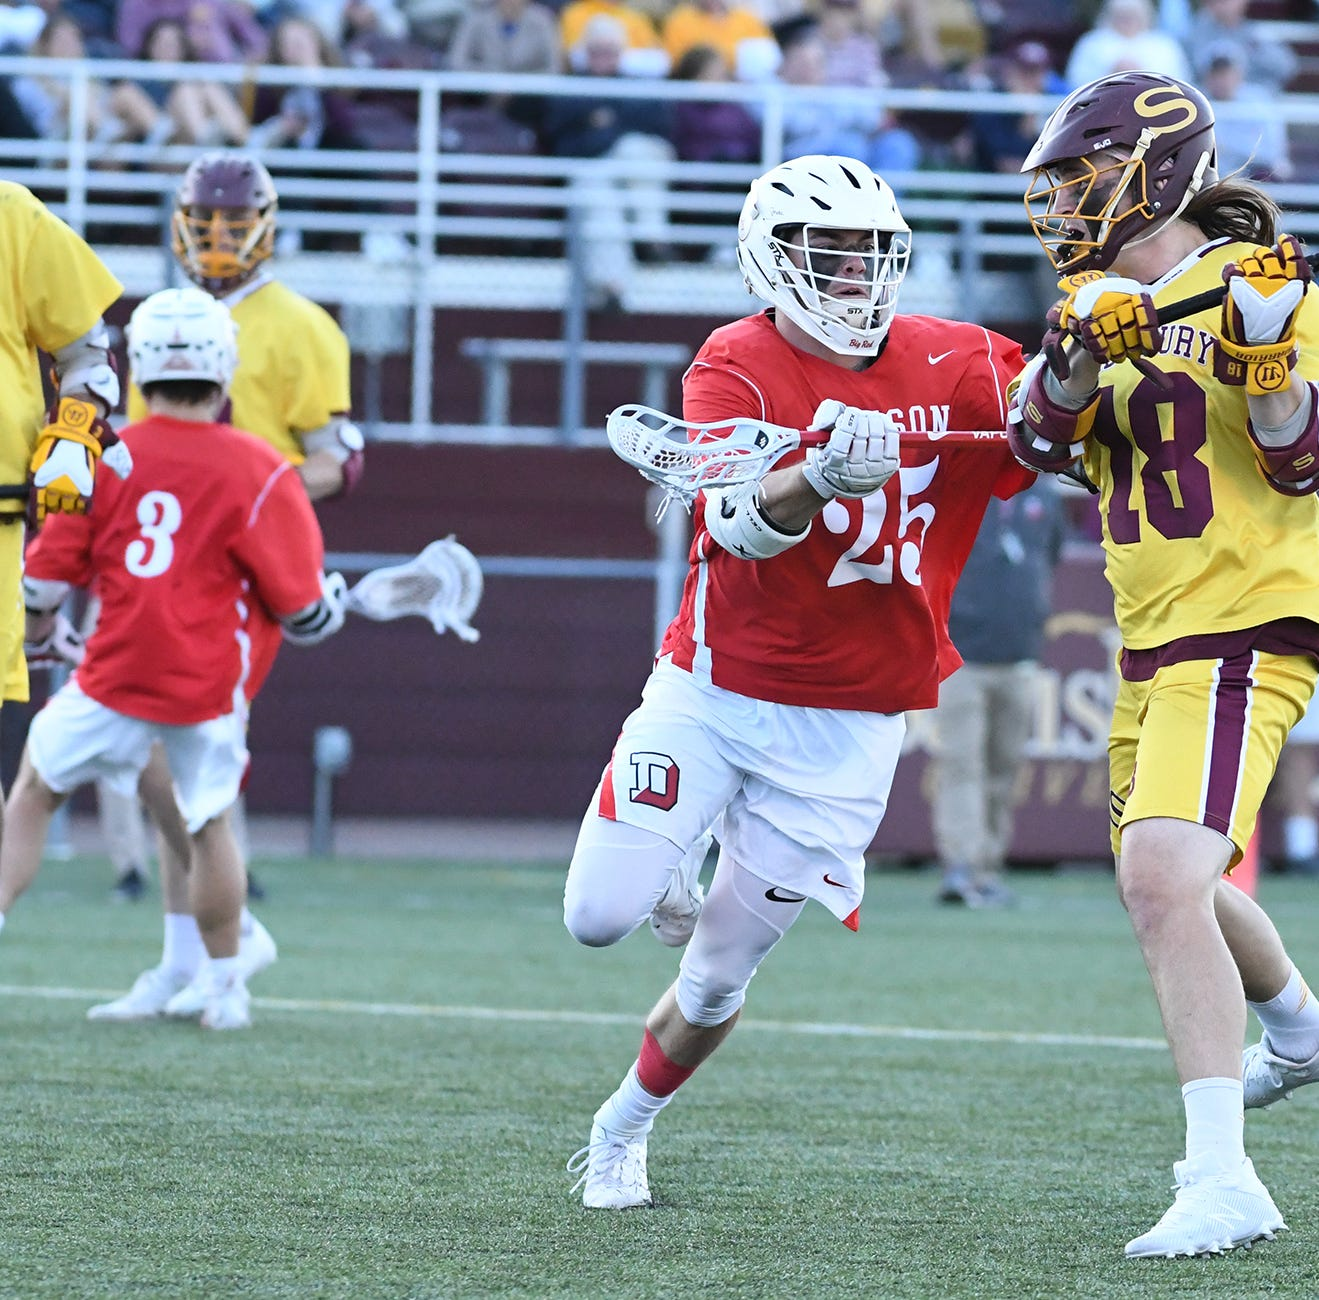 Salisbury men's lacrosse defeats Denison to advance to NCAA semifinals